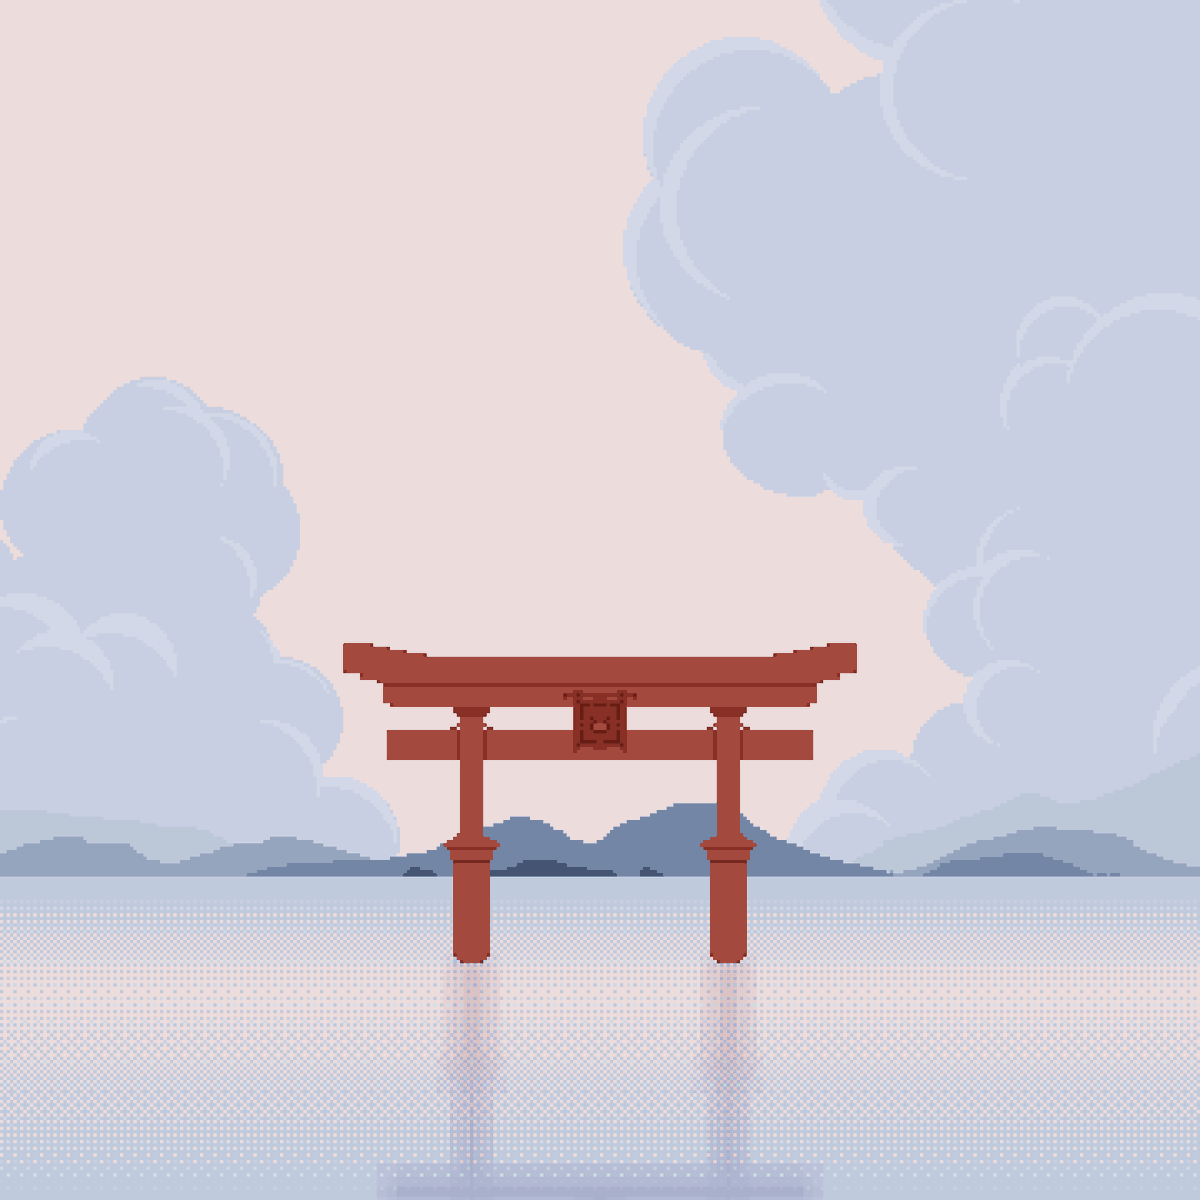 Memories of Japan #1 for @Pixel_Dailies  #japan • #tori • #memories • #art • #pixelart • #pixel_dailies • #impressive https://t.co/qMCA4WDaAp